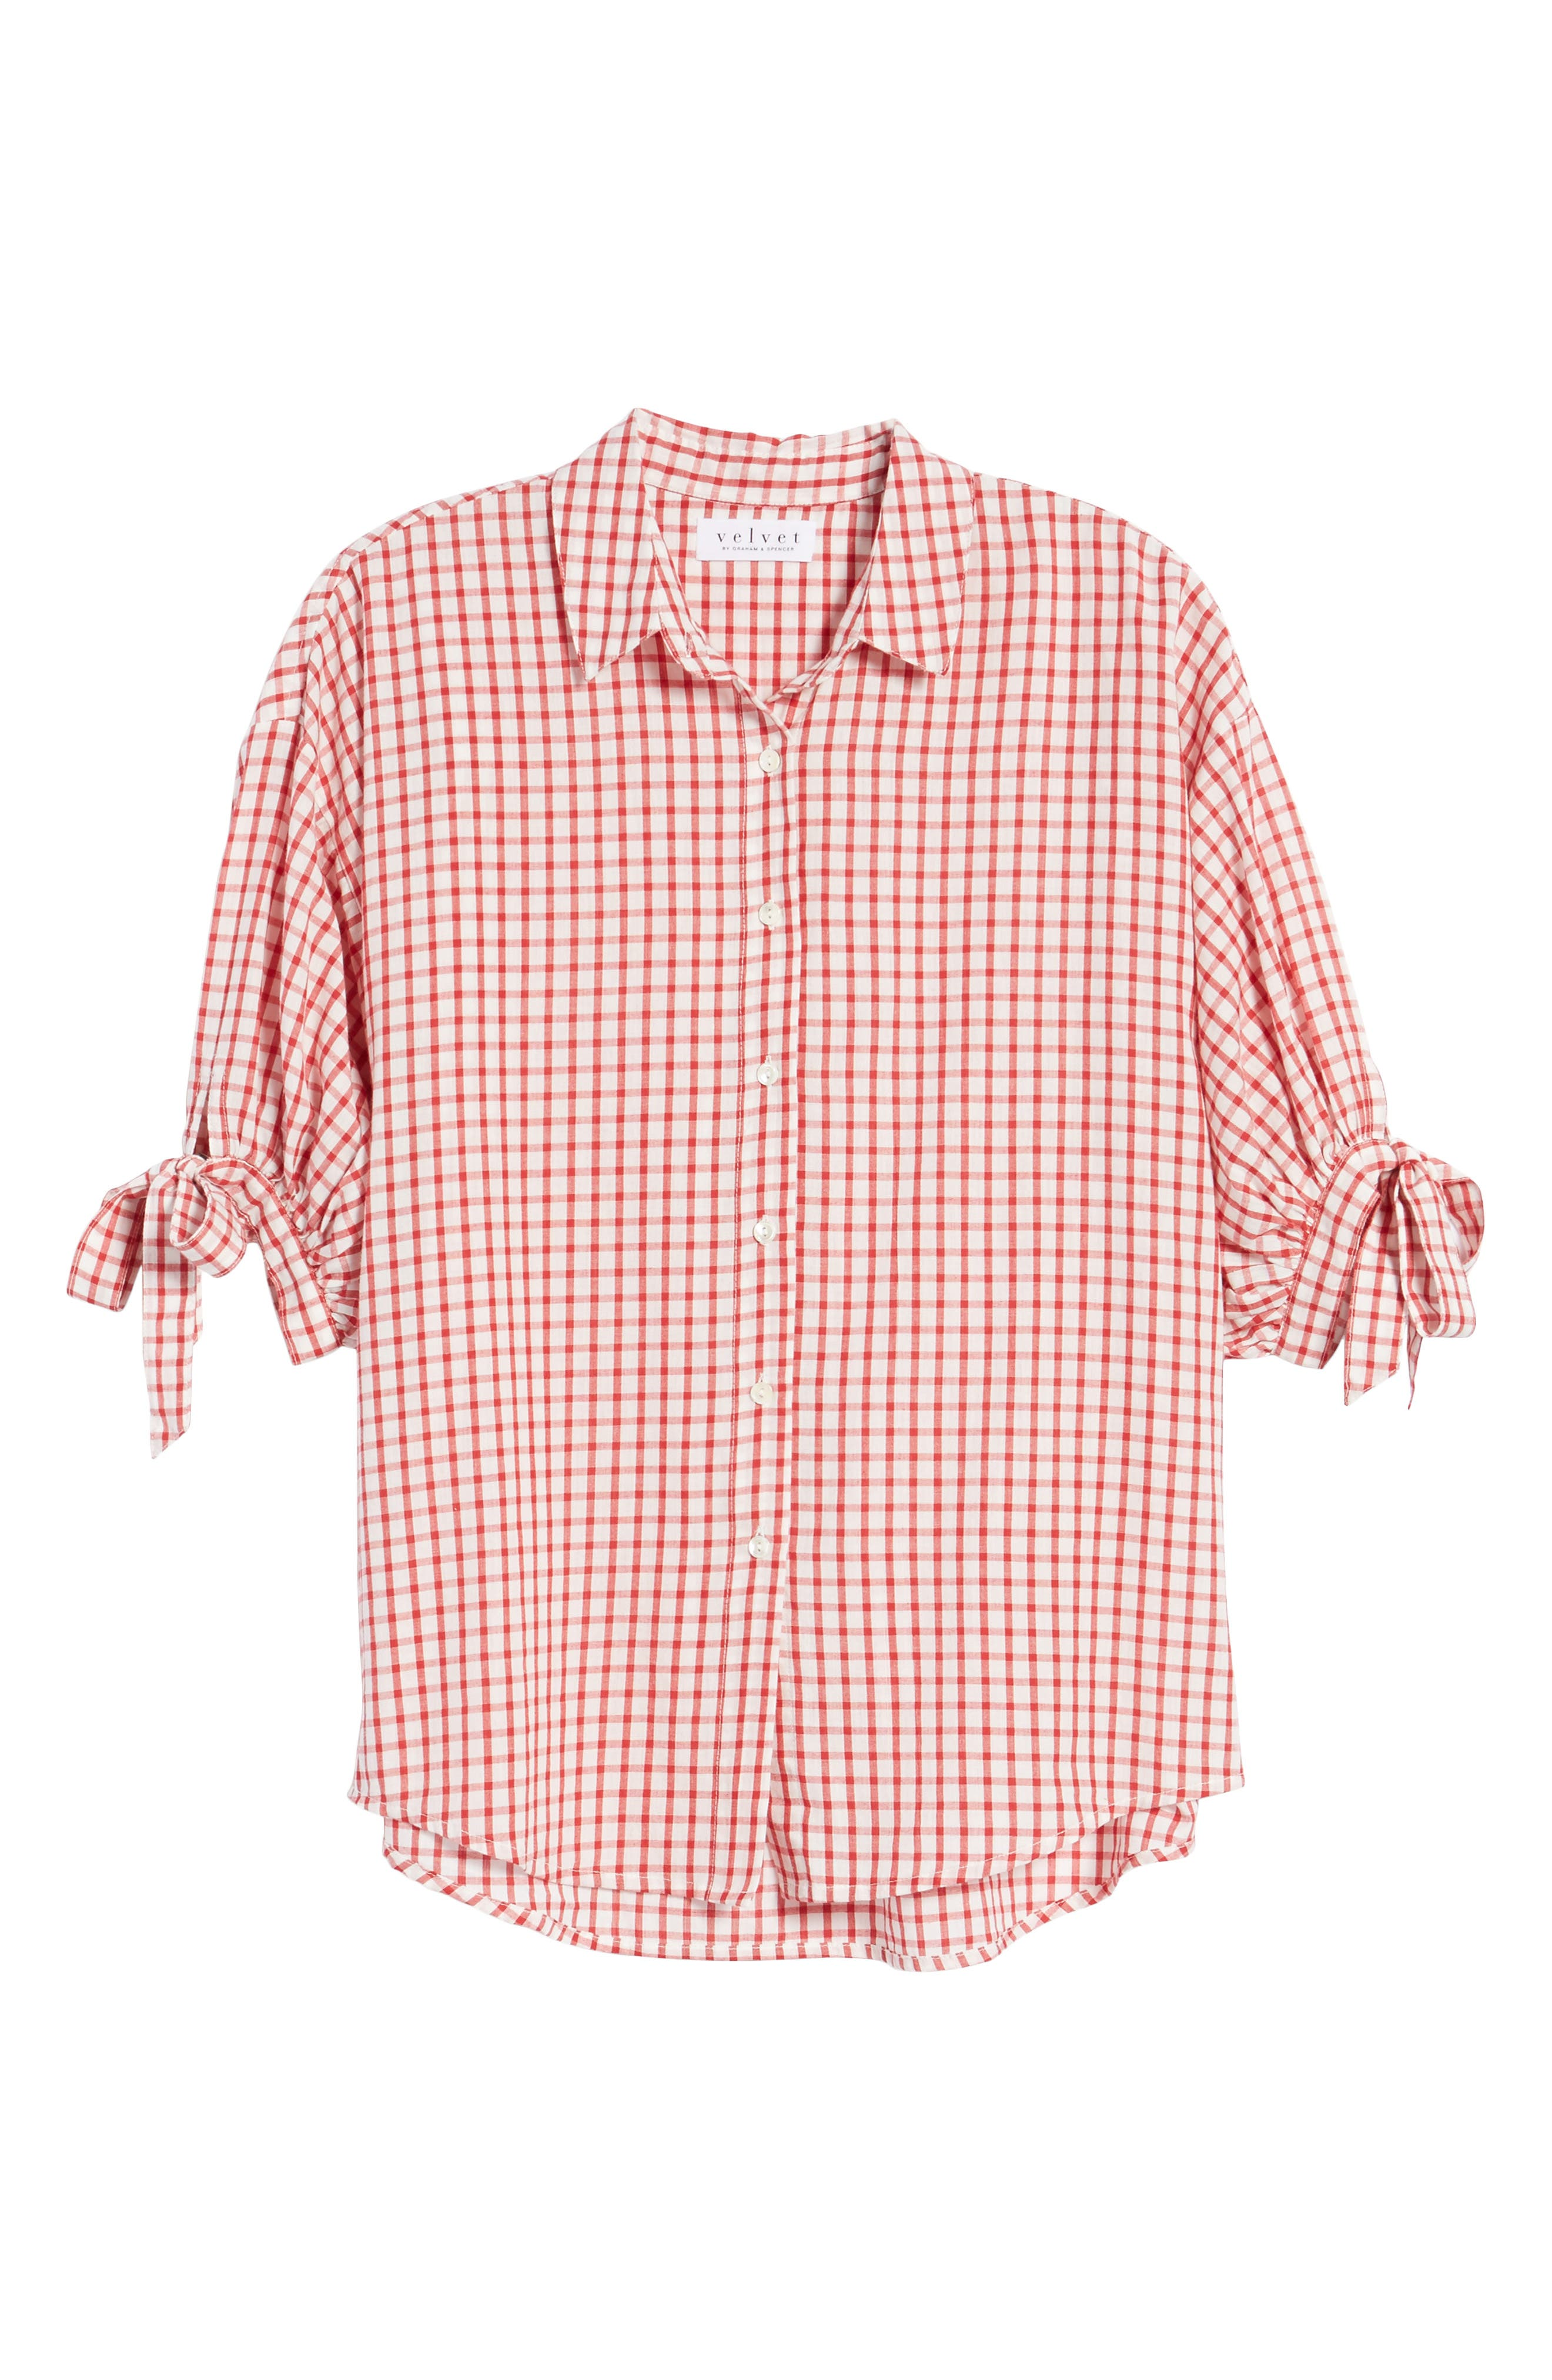 Check Button-Down Shirt,                             Alternate thumbnail 6, color,                             Red